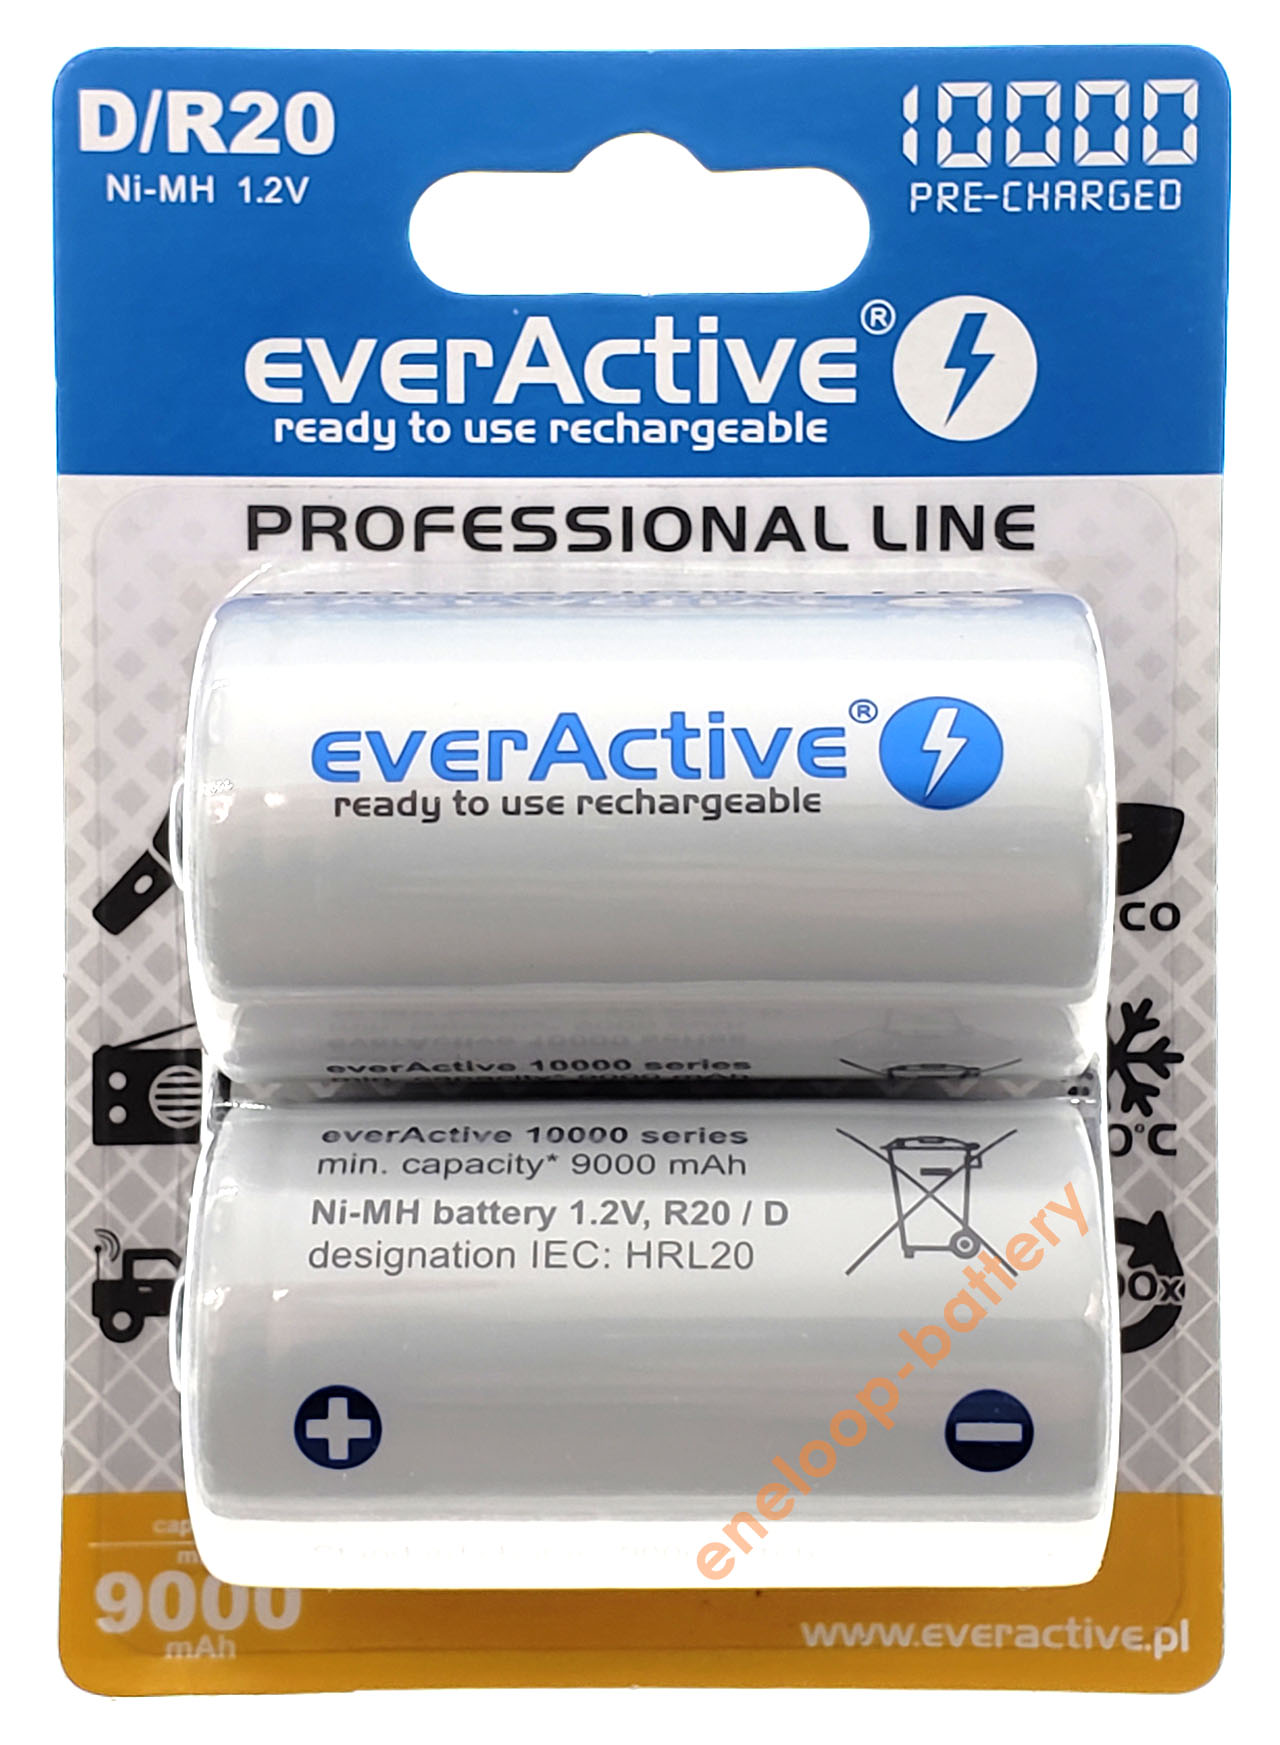 D R20 Everactive 10000 mah Ready to use